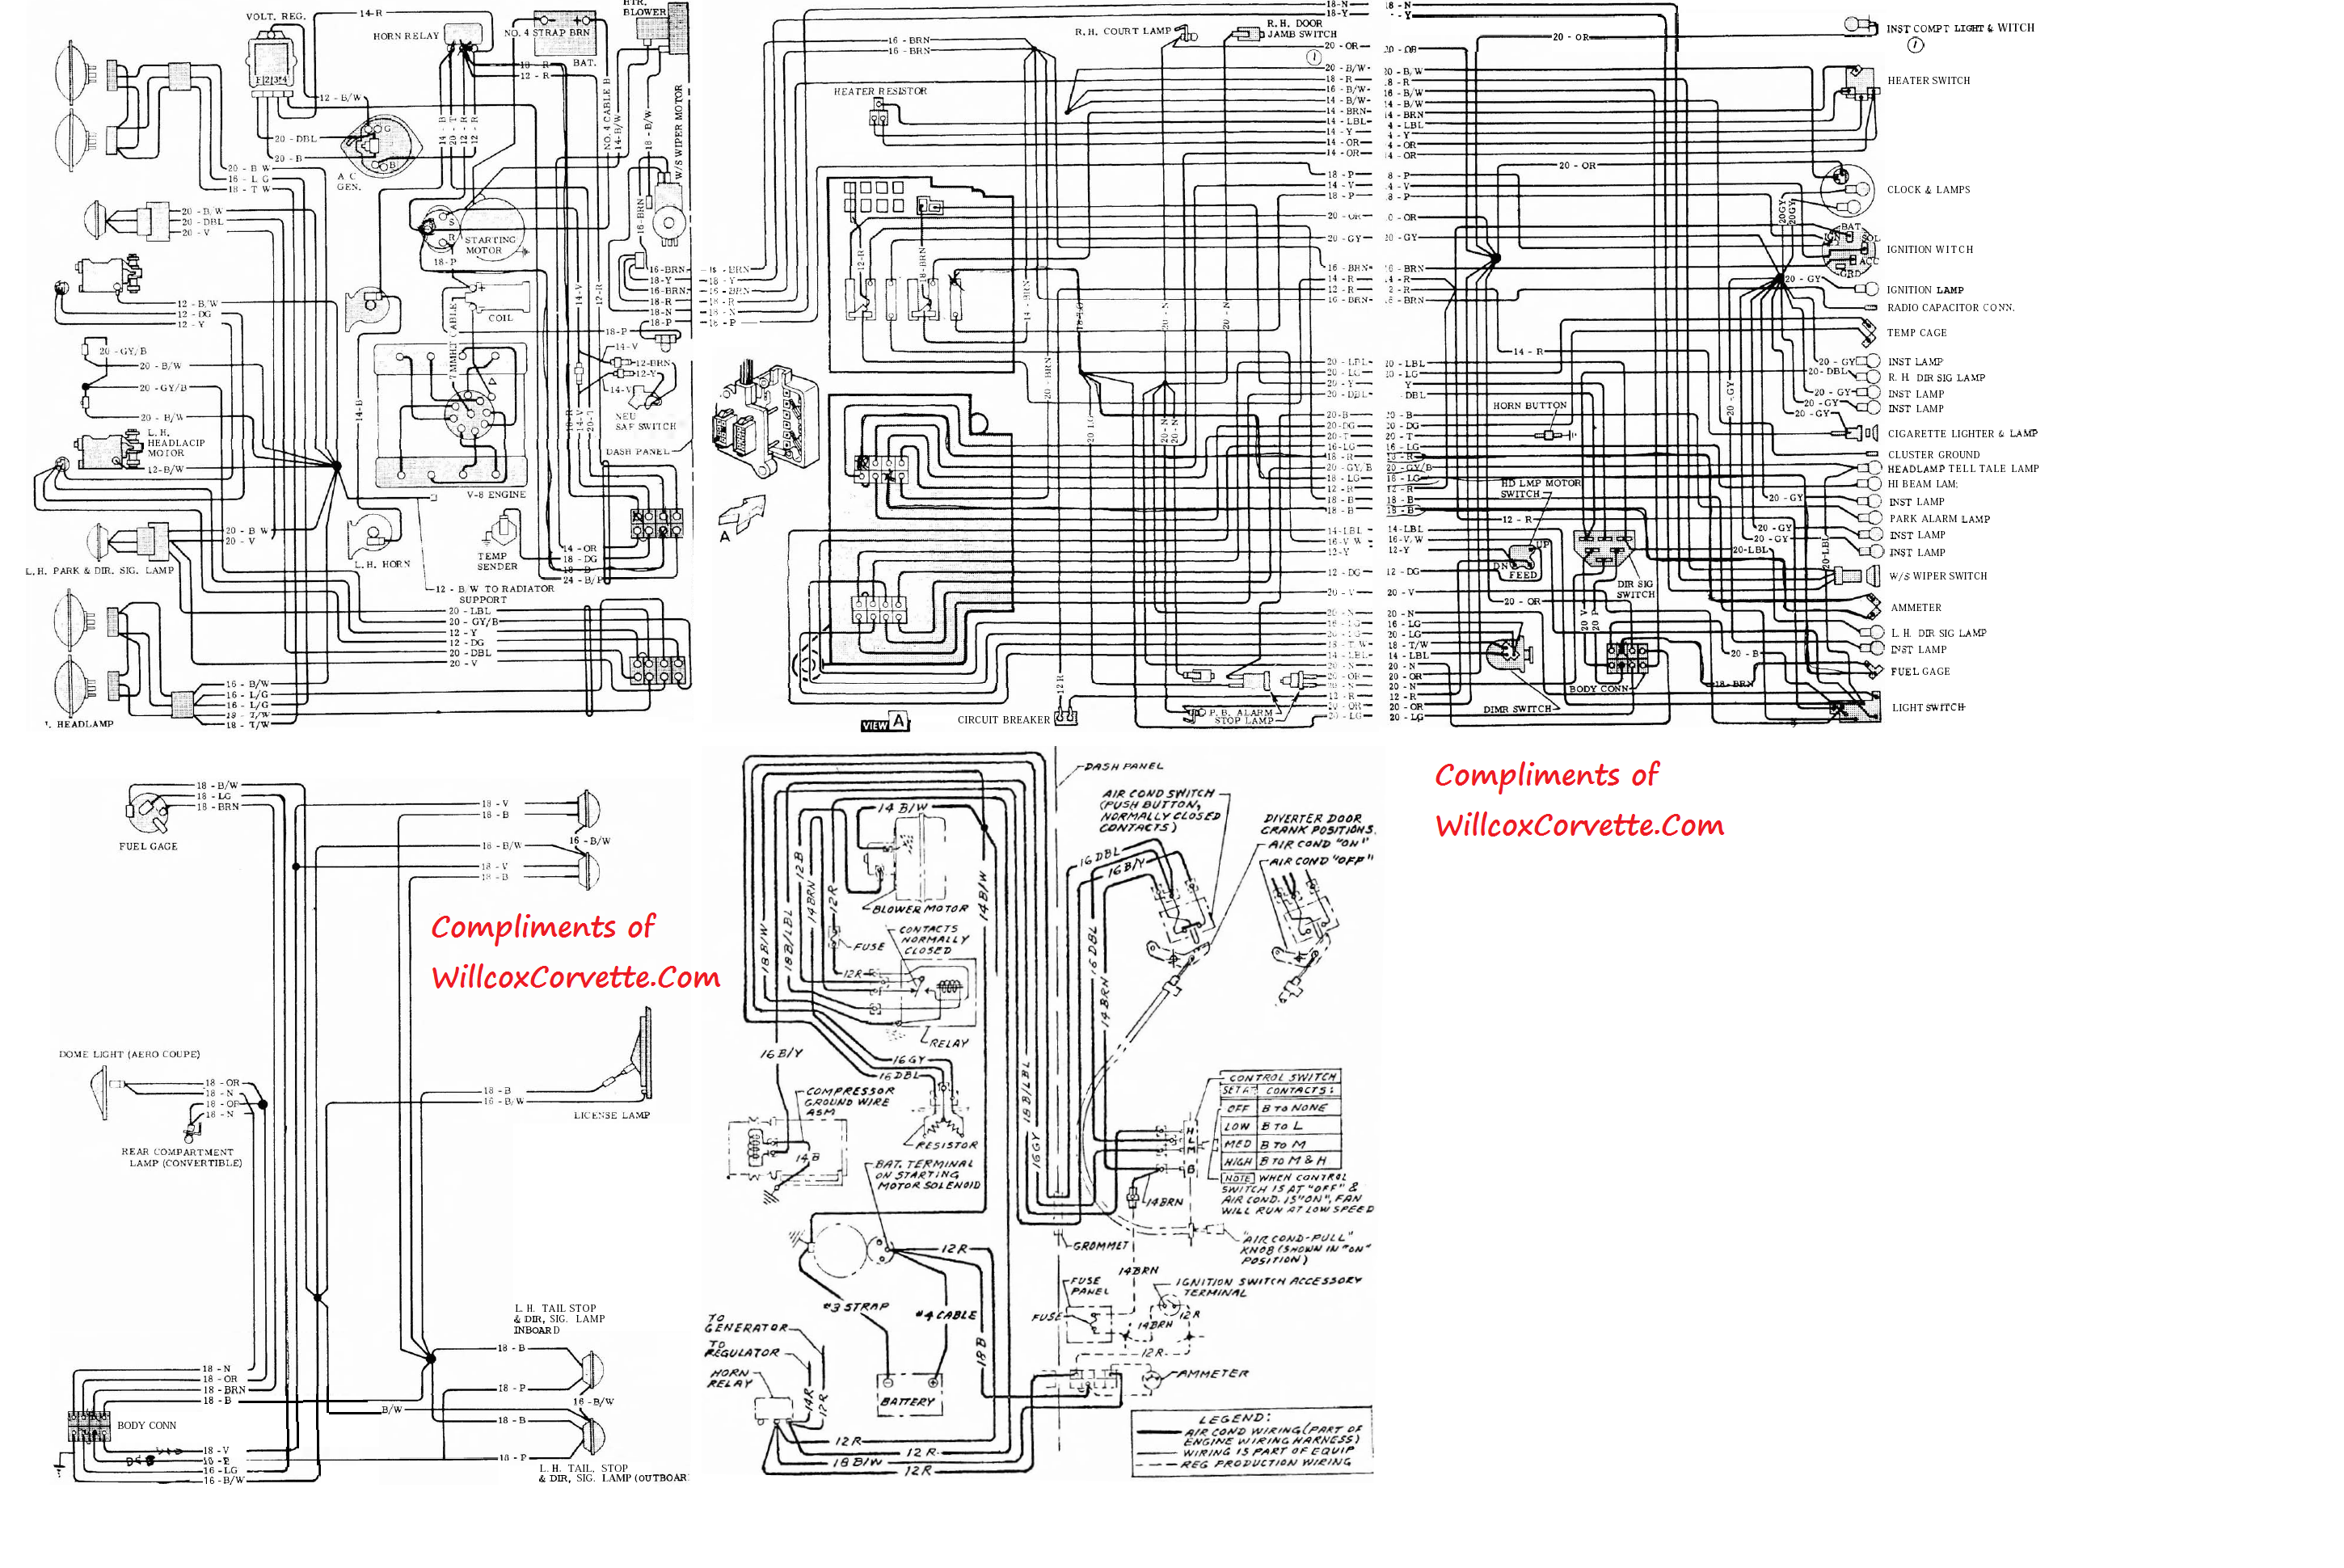 1963 Corvette Tracer Wiring Diagram Tracer Schematic 1979 corvette wiring diagrams wiring diagrams 1979 corvette wiring diagram download at aneh.co